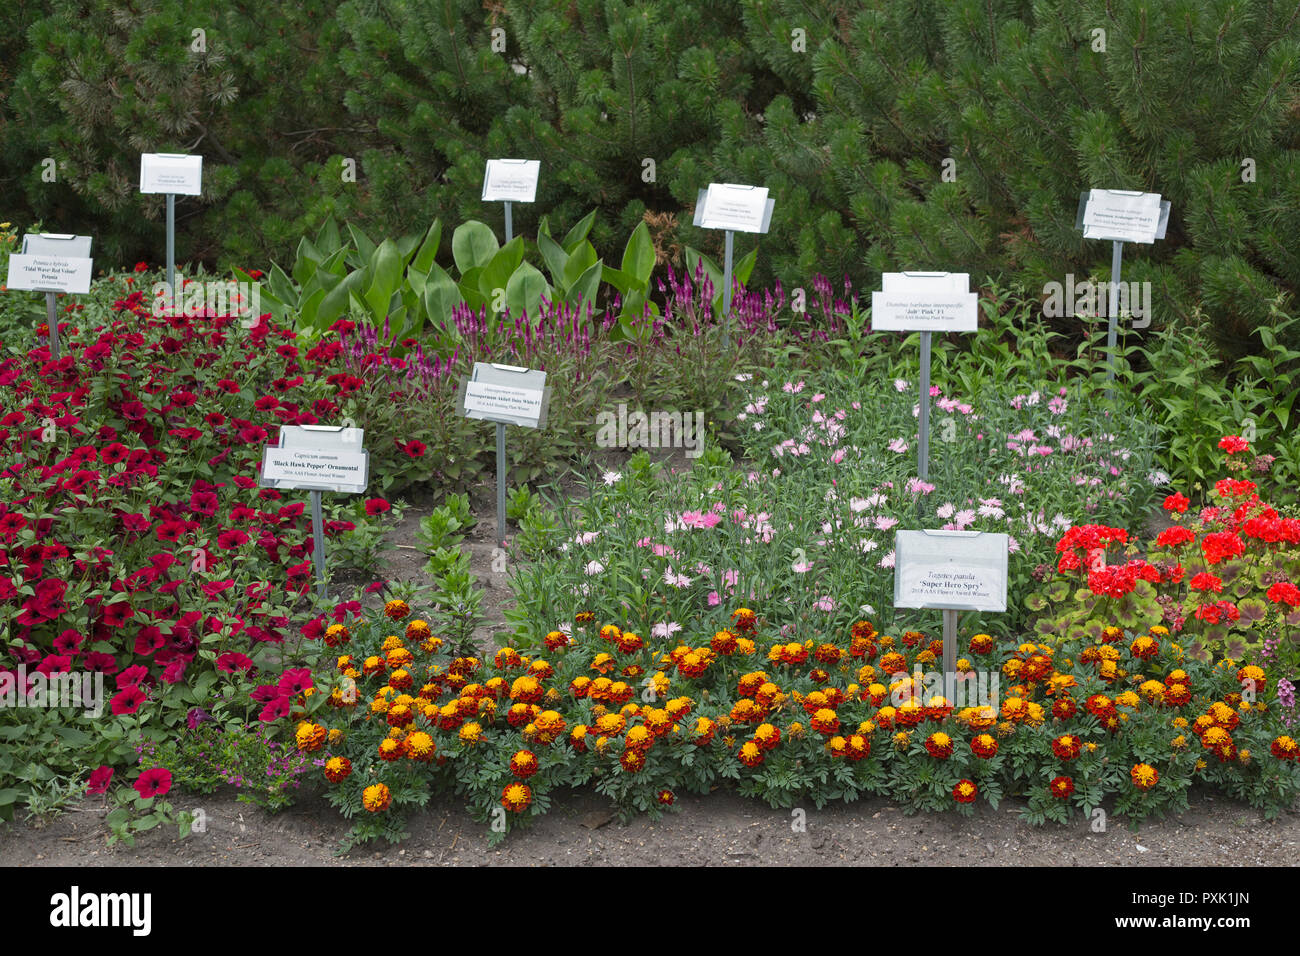 AAS (All-America Selections) flower award winners in display garden at Agriculture building on University of Saskatchewan campus - Stock Image